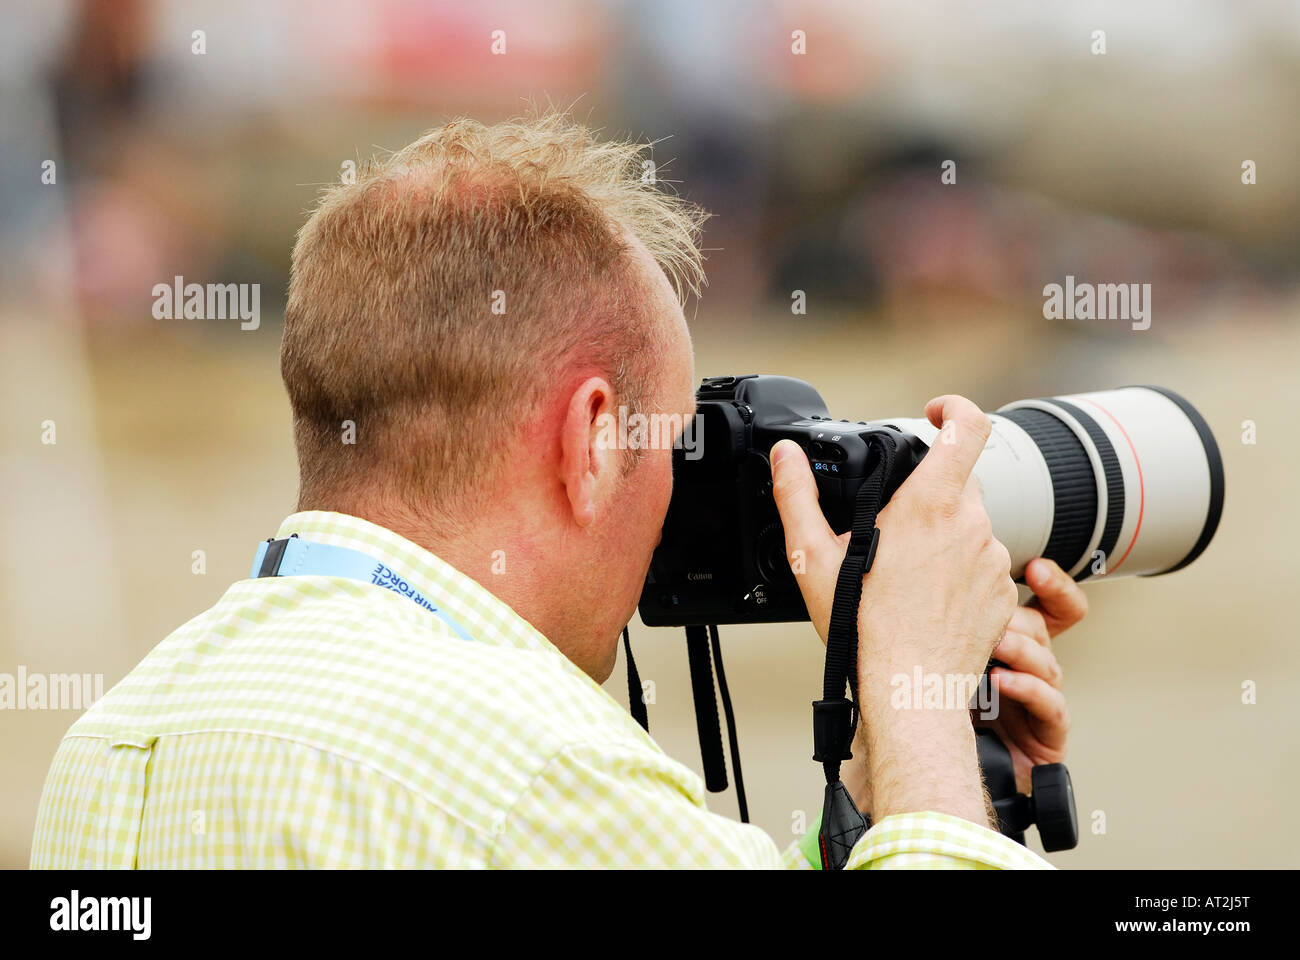 a man photographer using a digital slr camera with a lon telephoto zoom lens attached taking a photograph picture Stock Photo